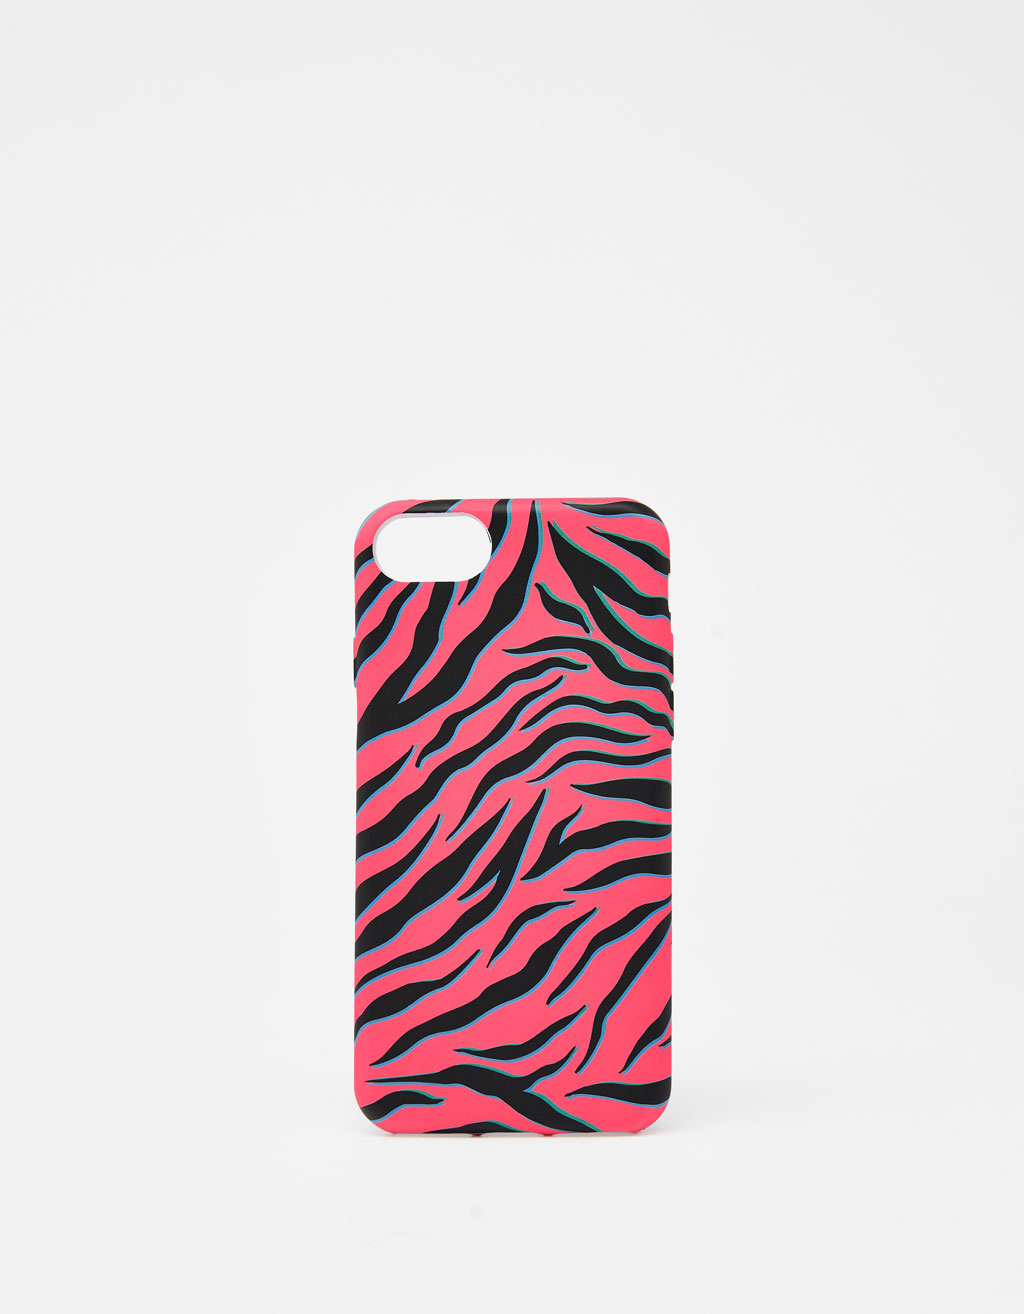 Zebra print iPhone 6/6S/7/8 case